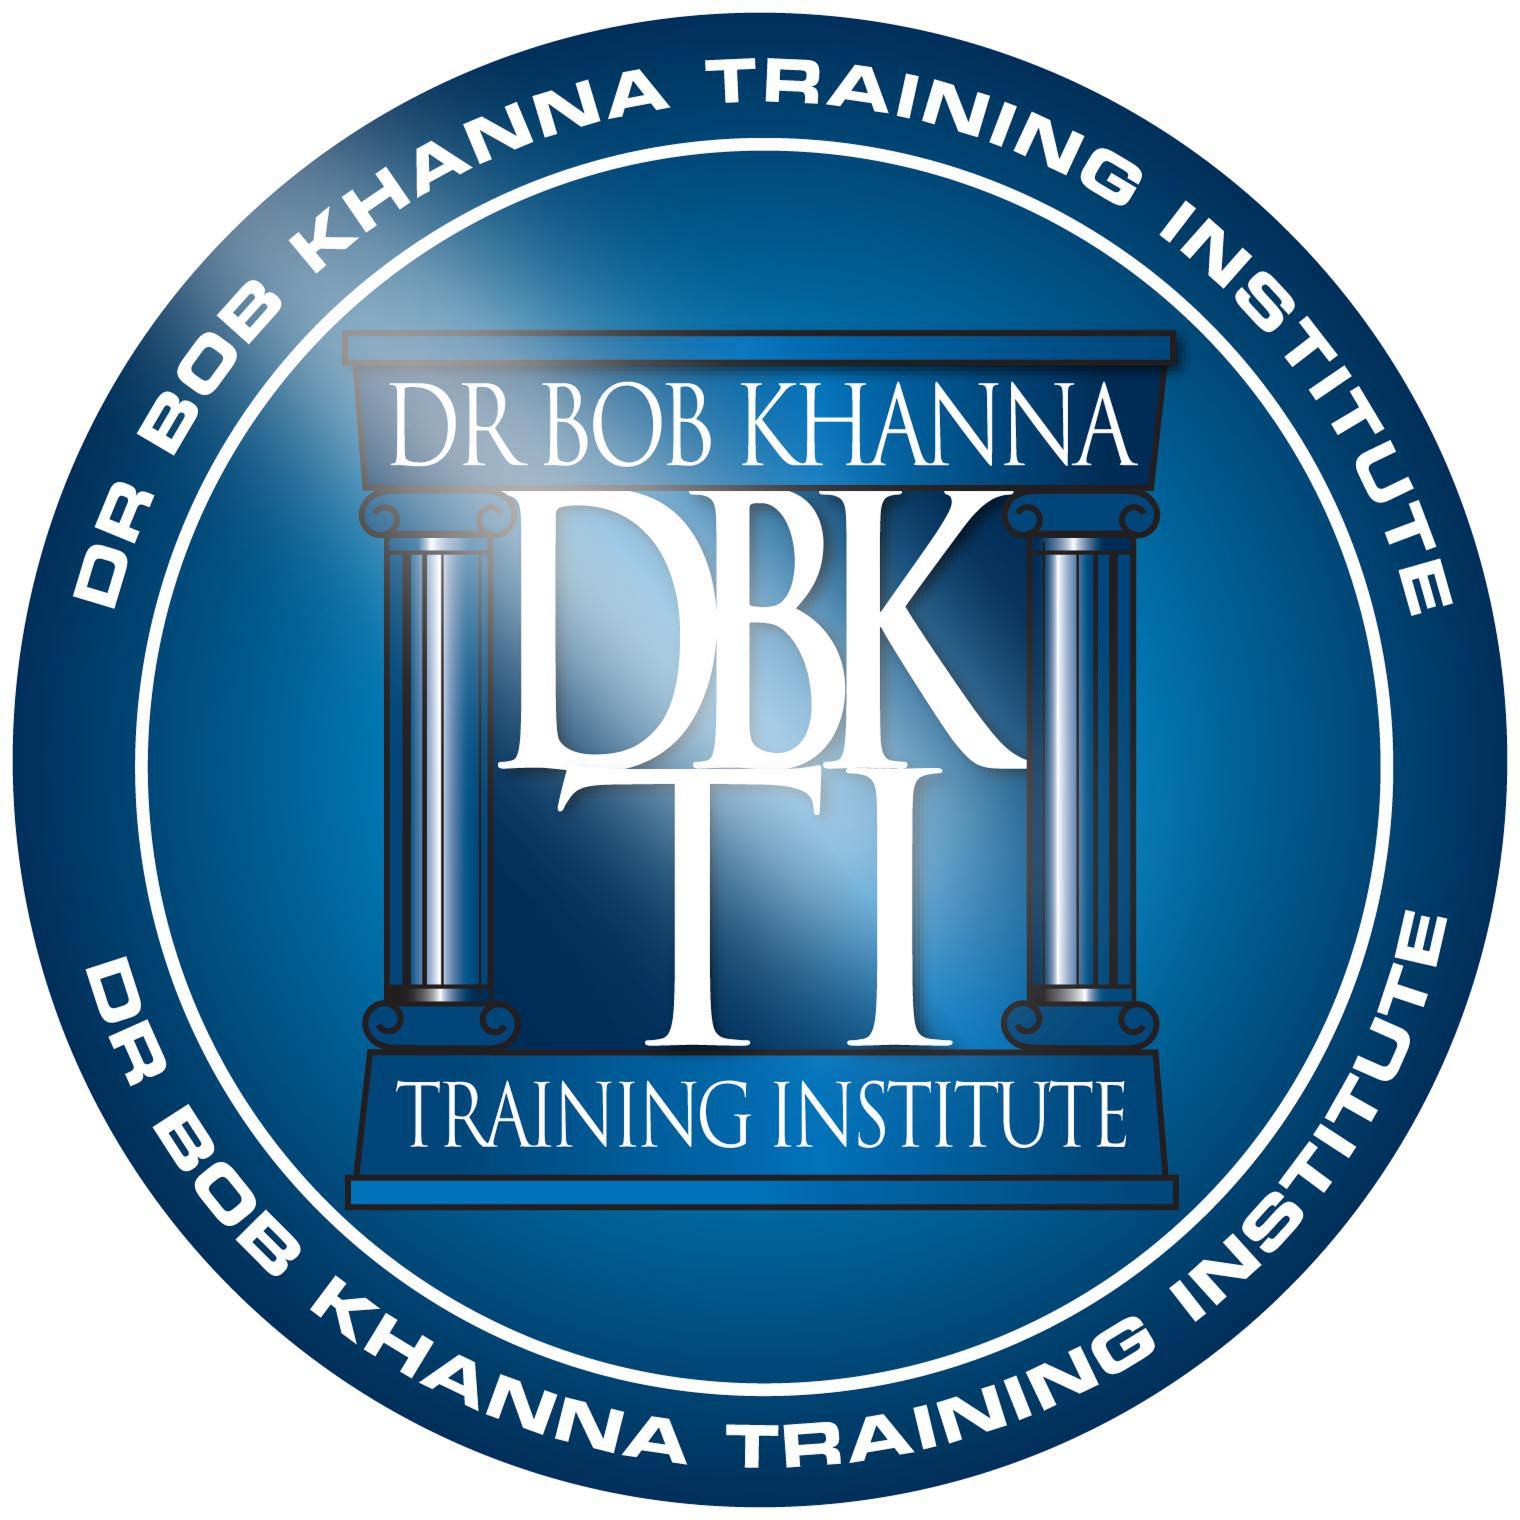 The Dr Bob Khanna Training Institute